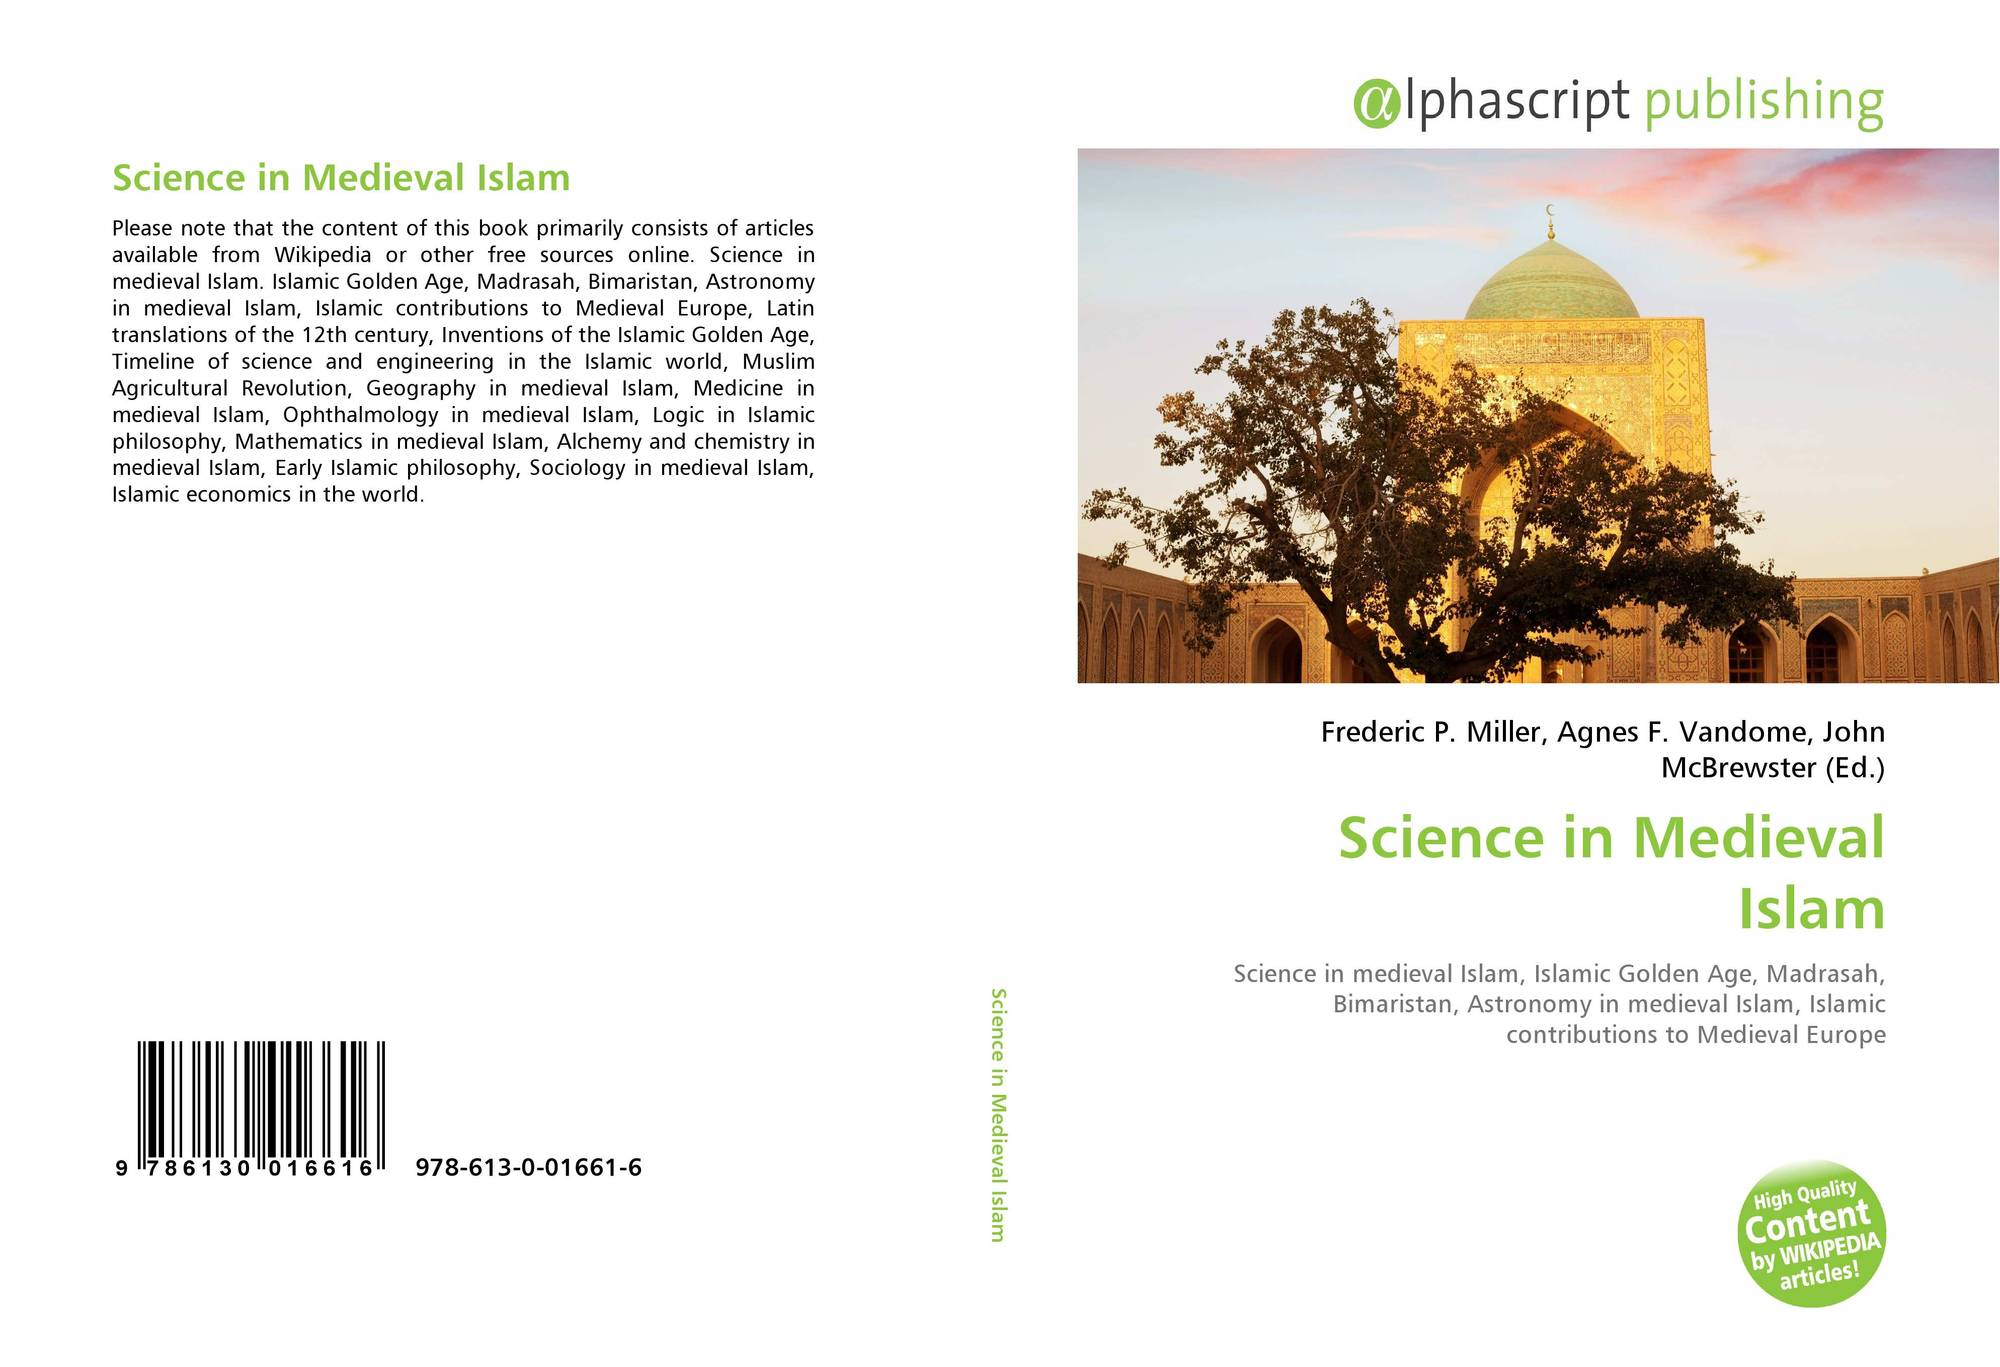 science and mathematics in medieval islamic Mathematics and arts: connections between theory and practice in the medieval islamic world author links open overlay panel alpay Özdural show more https://doi.